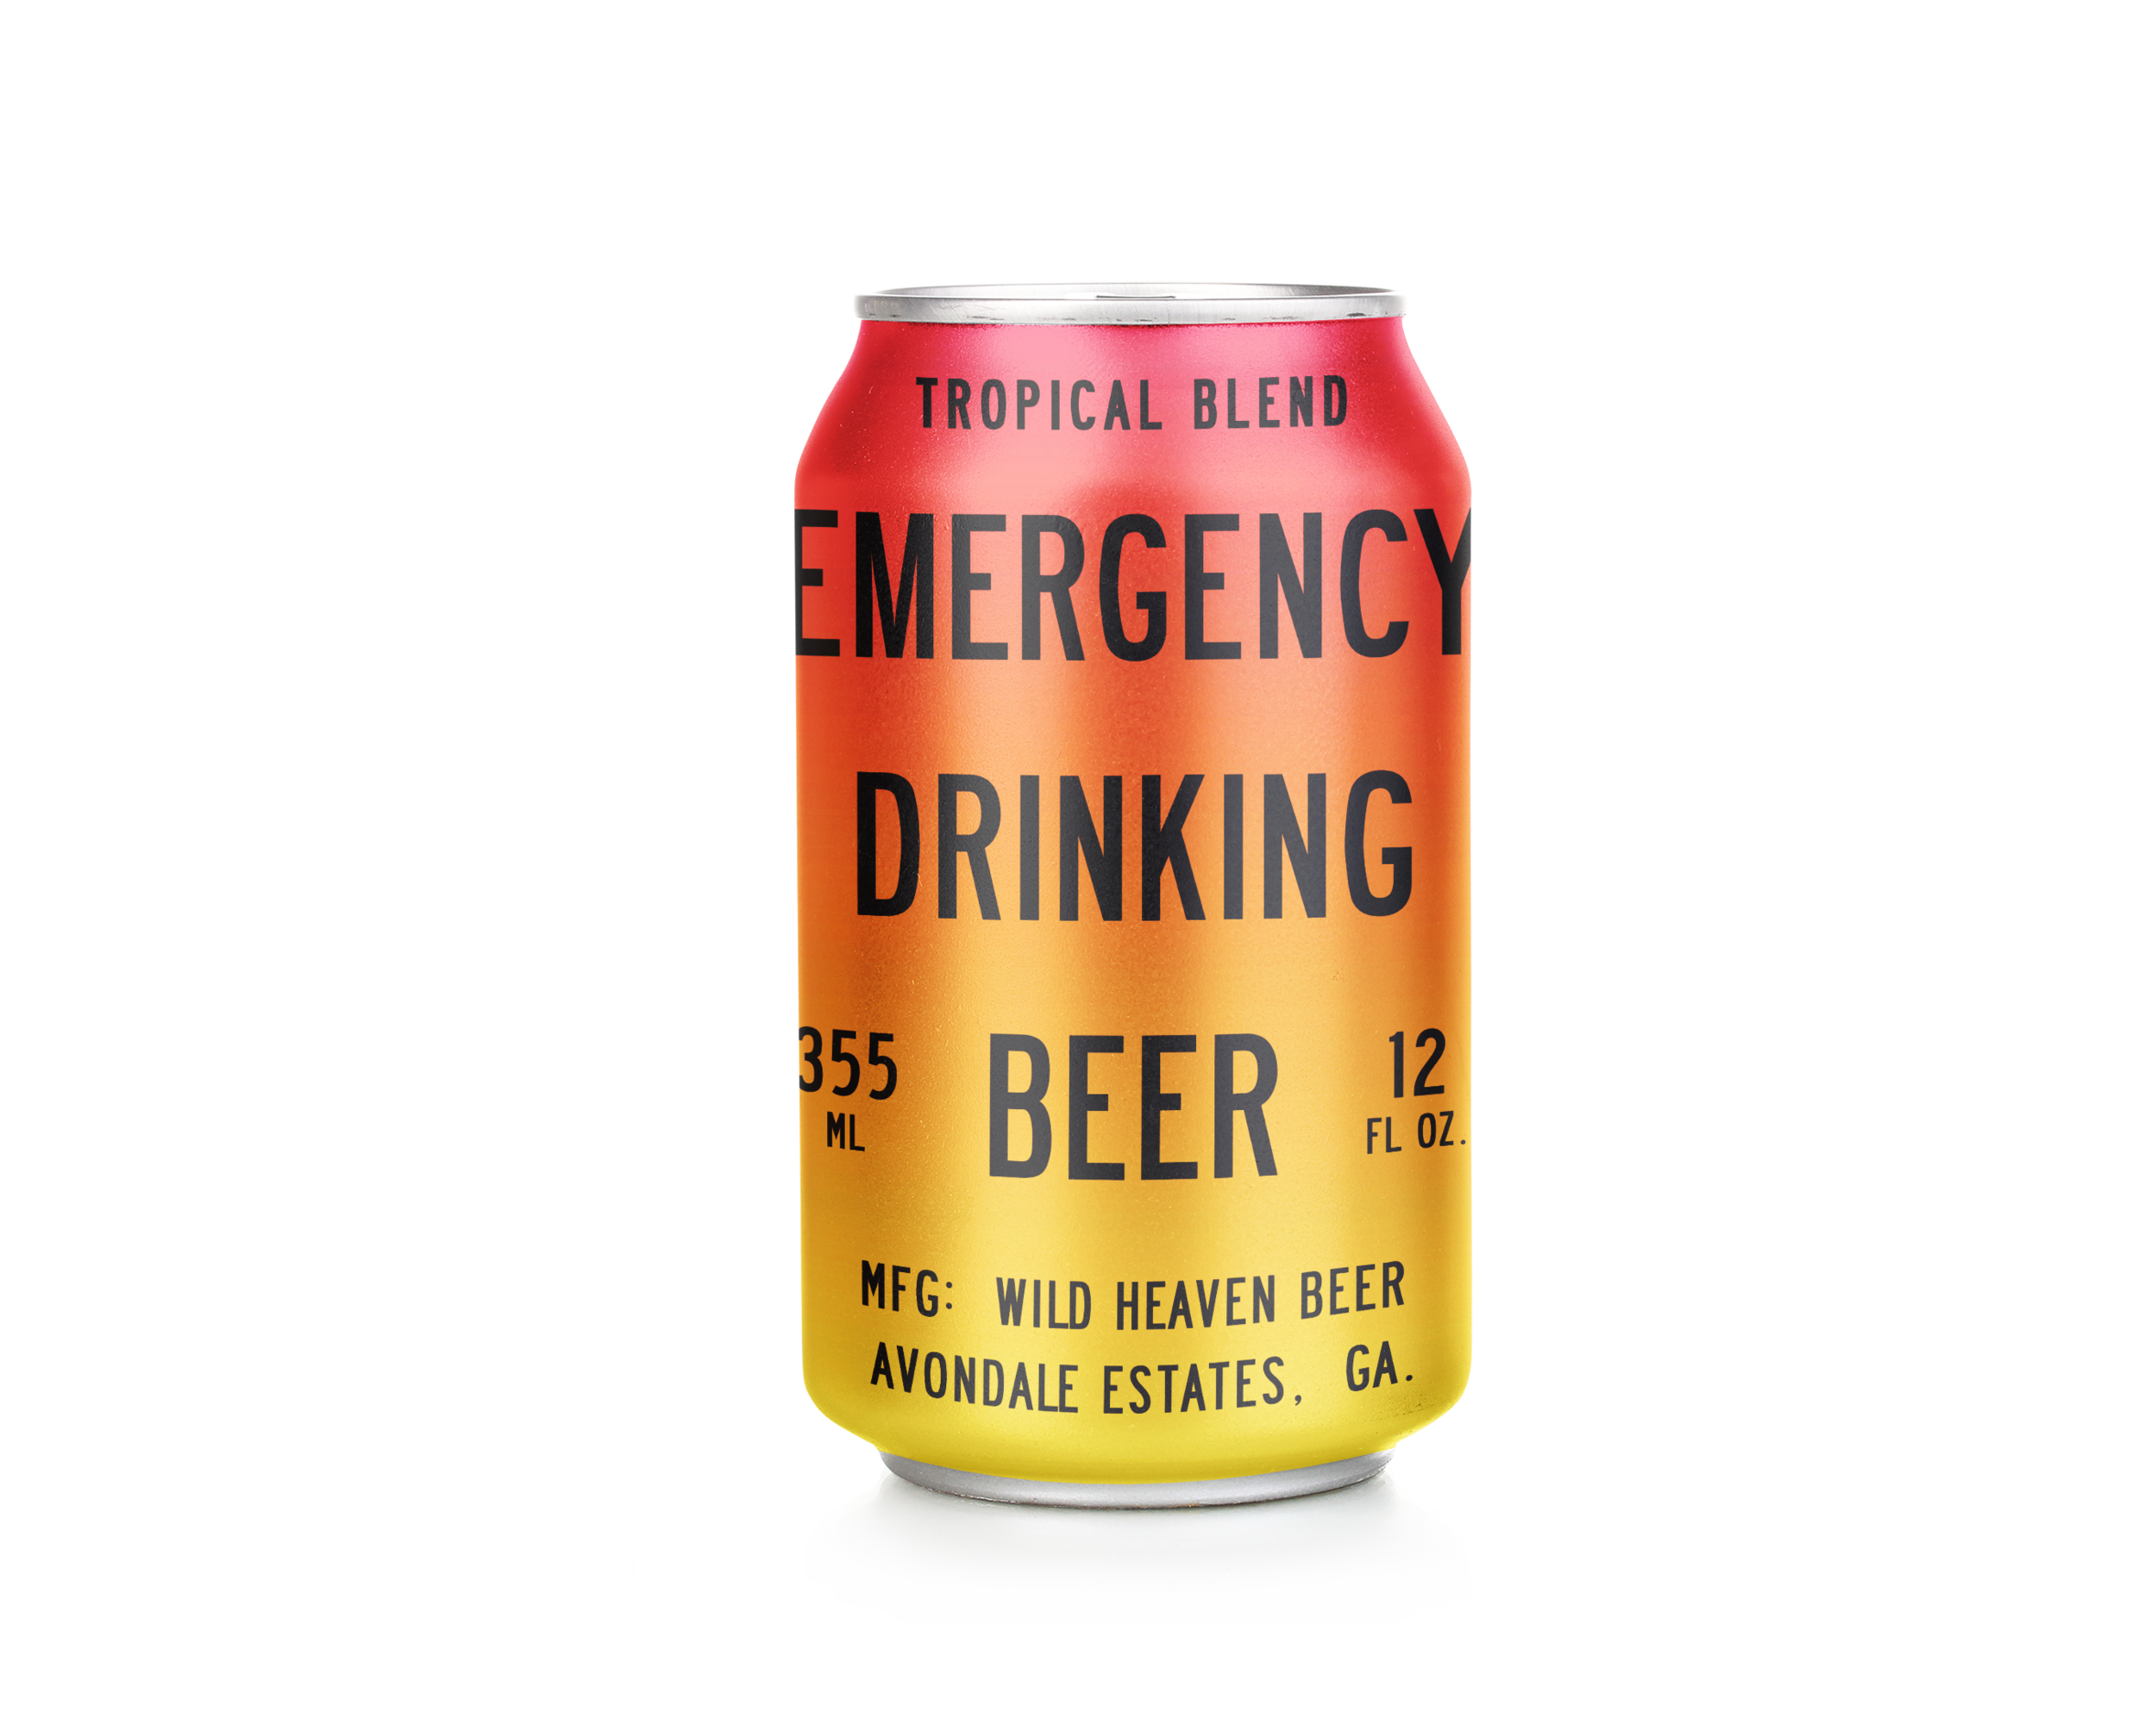 Emergency Drinking Beer Tropical Blend - 4% ABVFruit BeerAs the weather warms in spring, we blend Emergency Drinking Beer with fresh purees of guava, passionfruit and pineapple. A taste of the islands without excess sweetness. Available March through May.